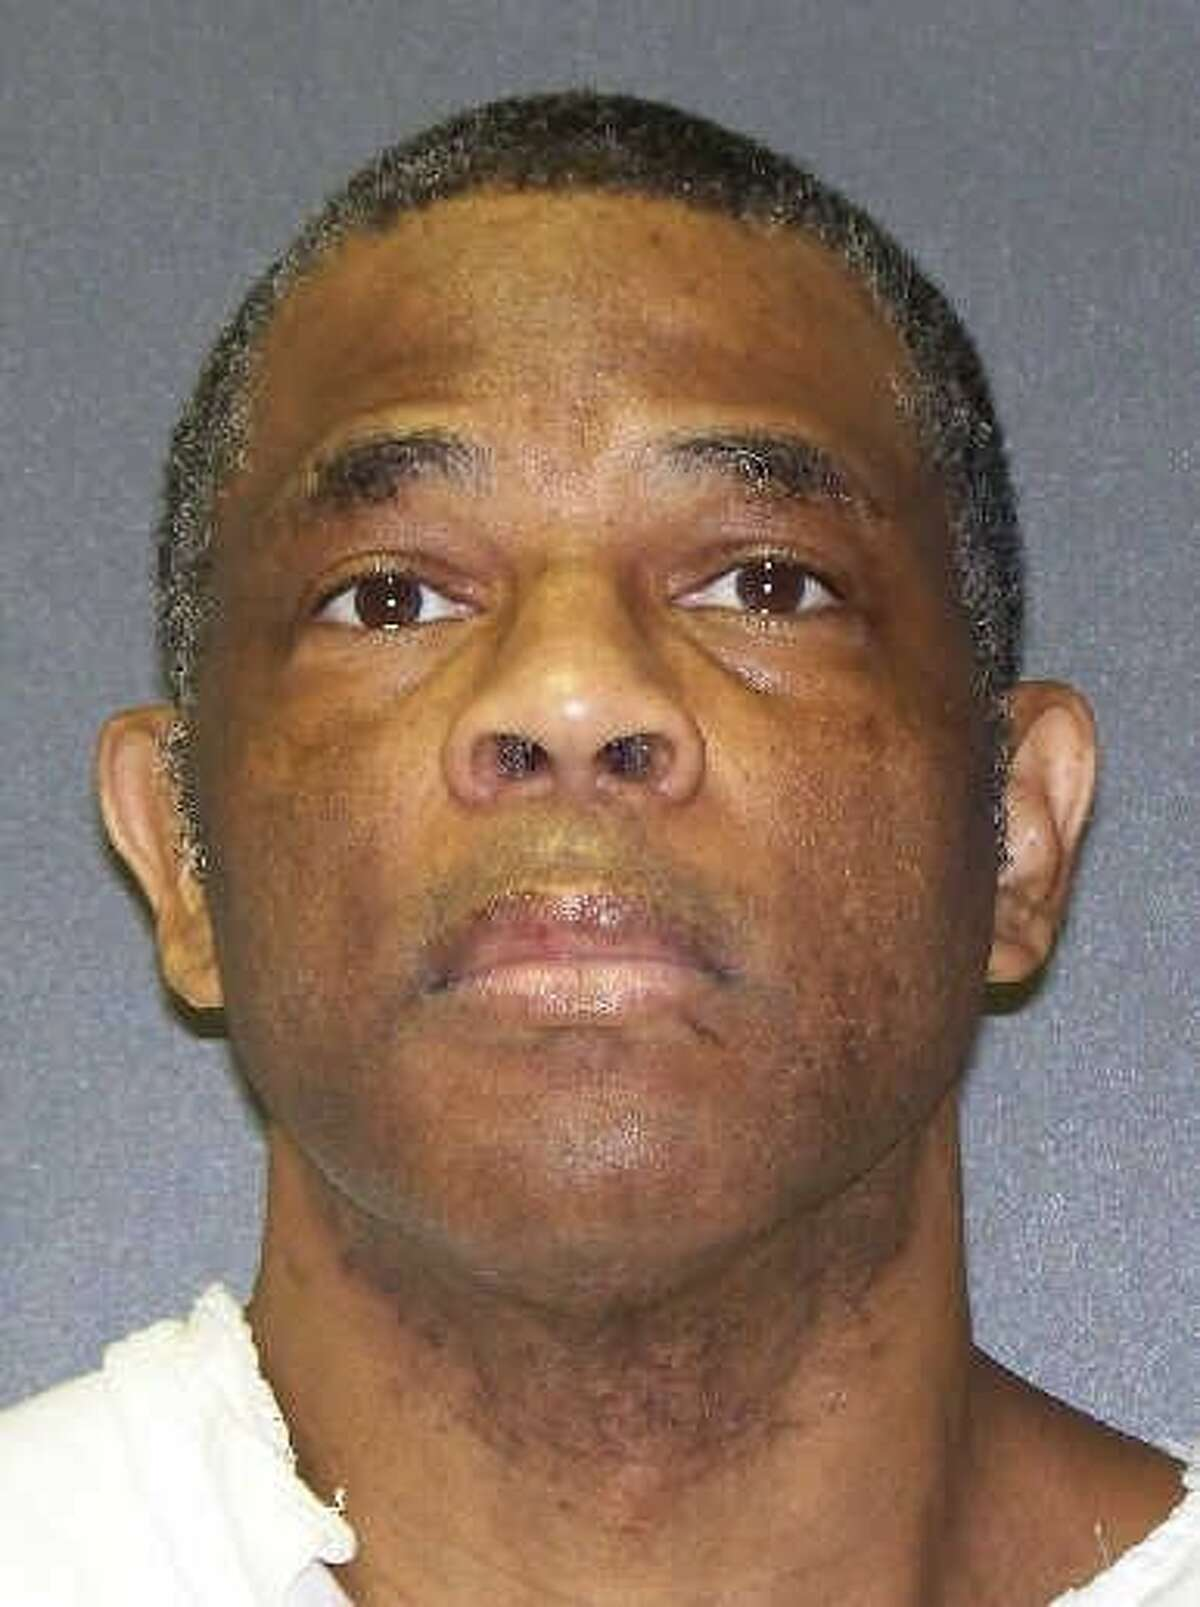 Former Beaumont resident Marvin Lee Wilson, who has been on Texas death row for 18 years, was scheduled for execution Aug. 7 after all his appeals were exhausted. Wilson was sentenced to death in 1998 on capital murder in the 1992 shooting death of 21-year-old Beaumont resident Jerry Robert Williams.